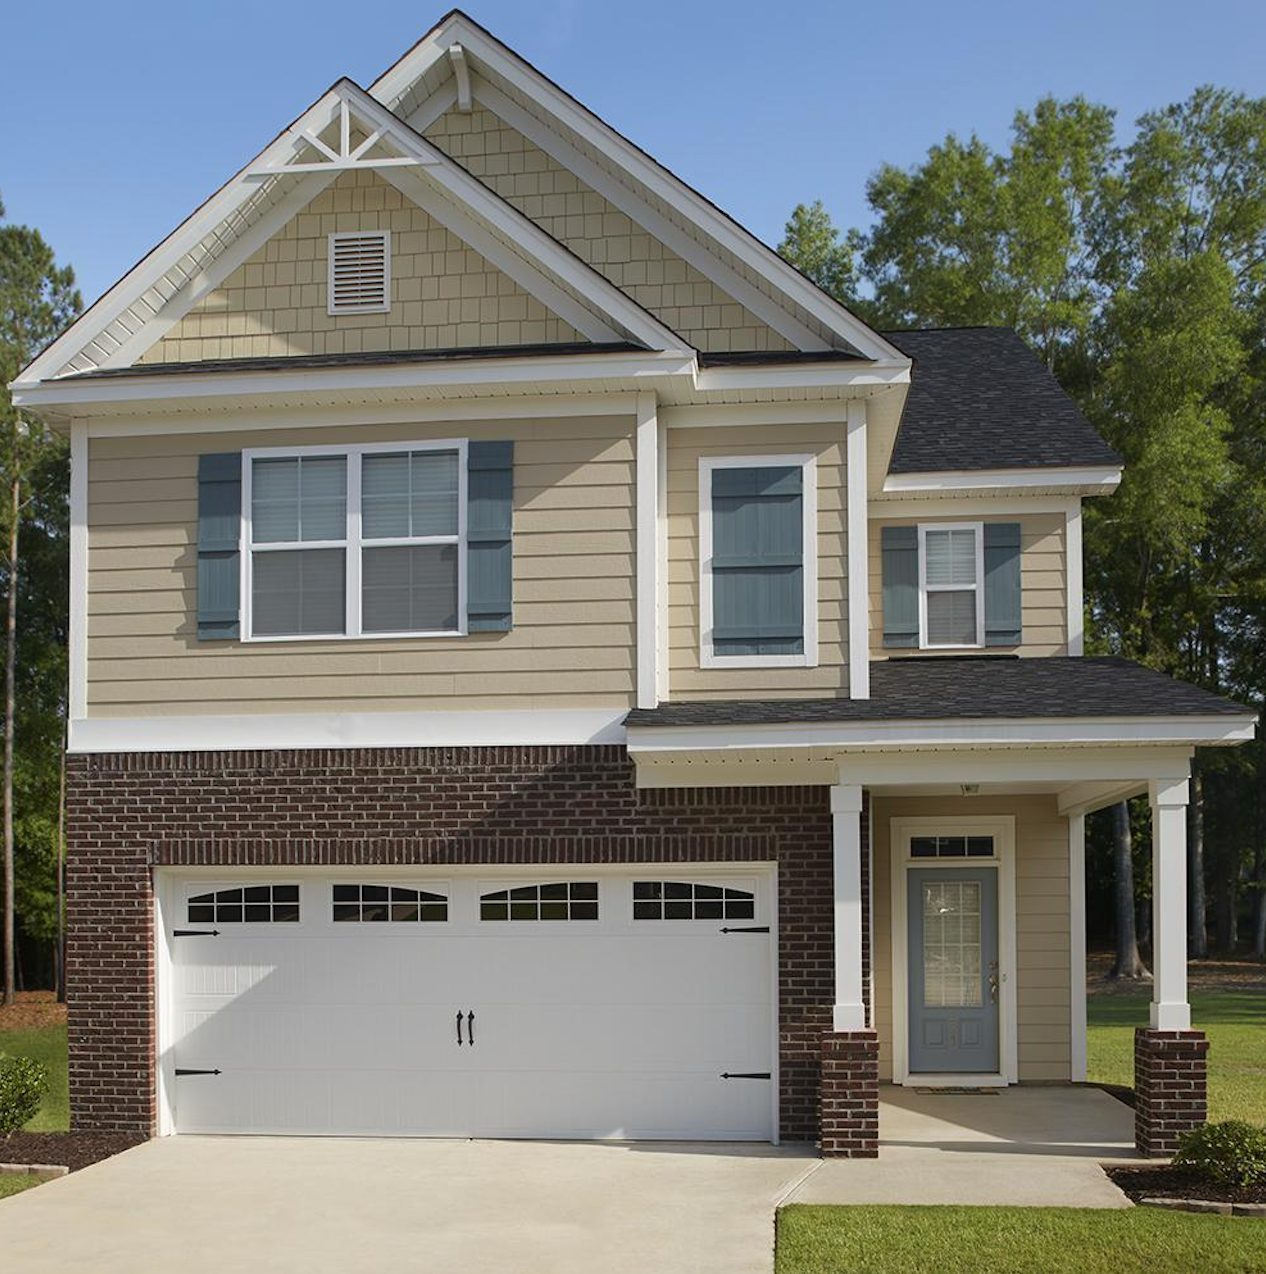 The Charleston Floor Plan Offers 4 Bedrooms 2 5 Bathrooms Into A Two Story House Newhome Newhomeconstruc New Home Builders New Home Construction New Homes